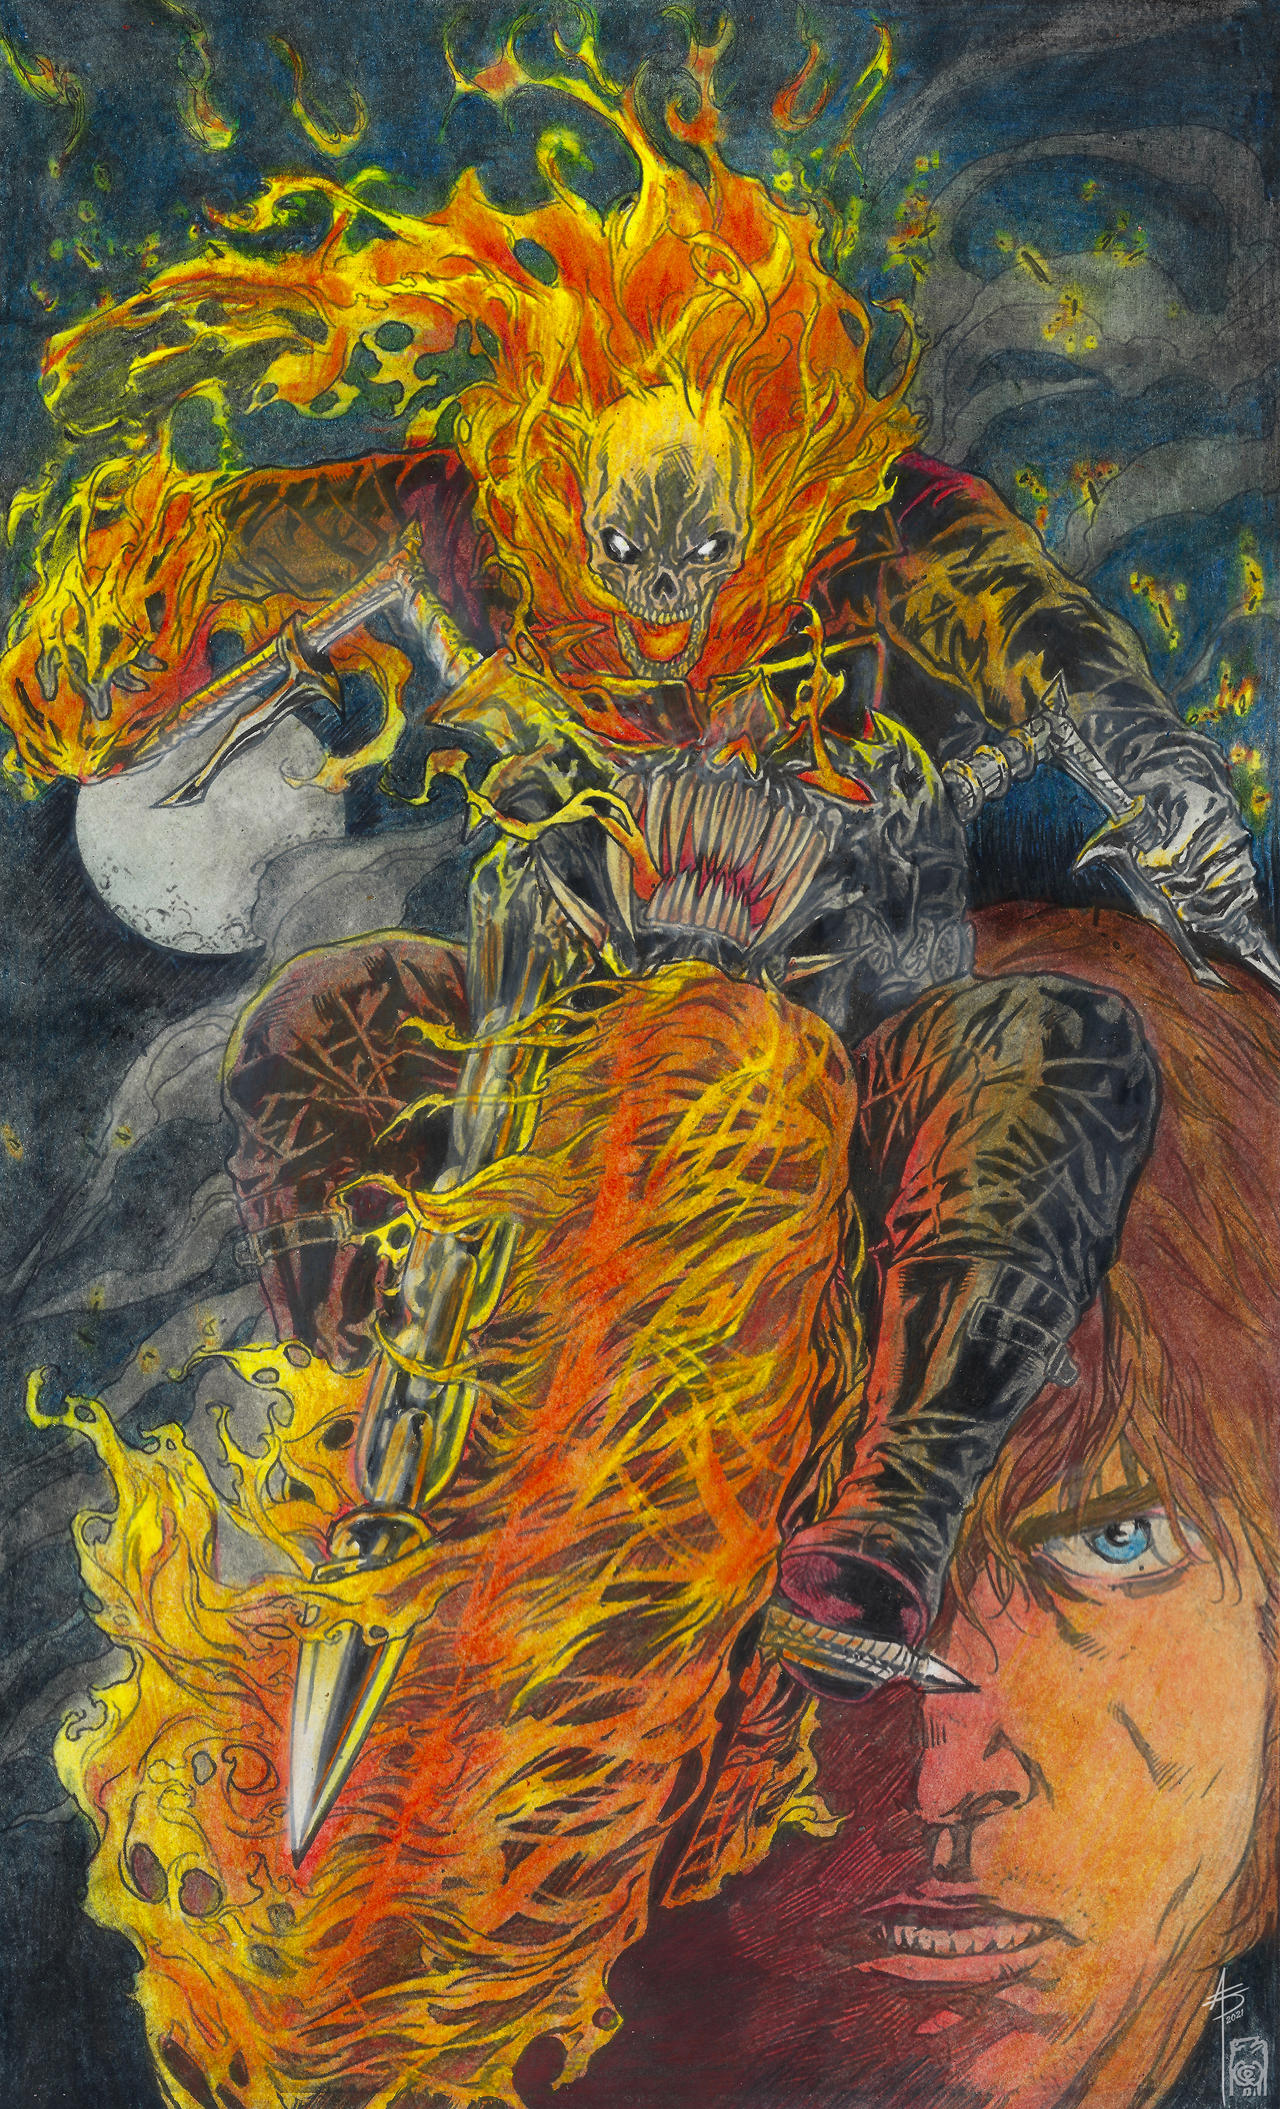 GHOSTRIDER colors